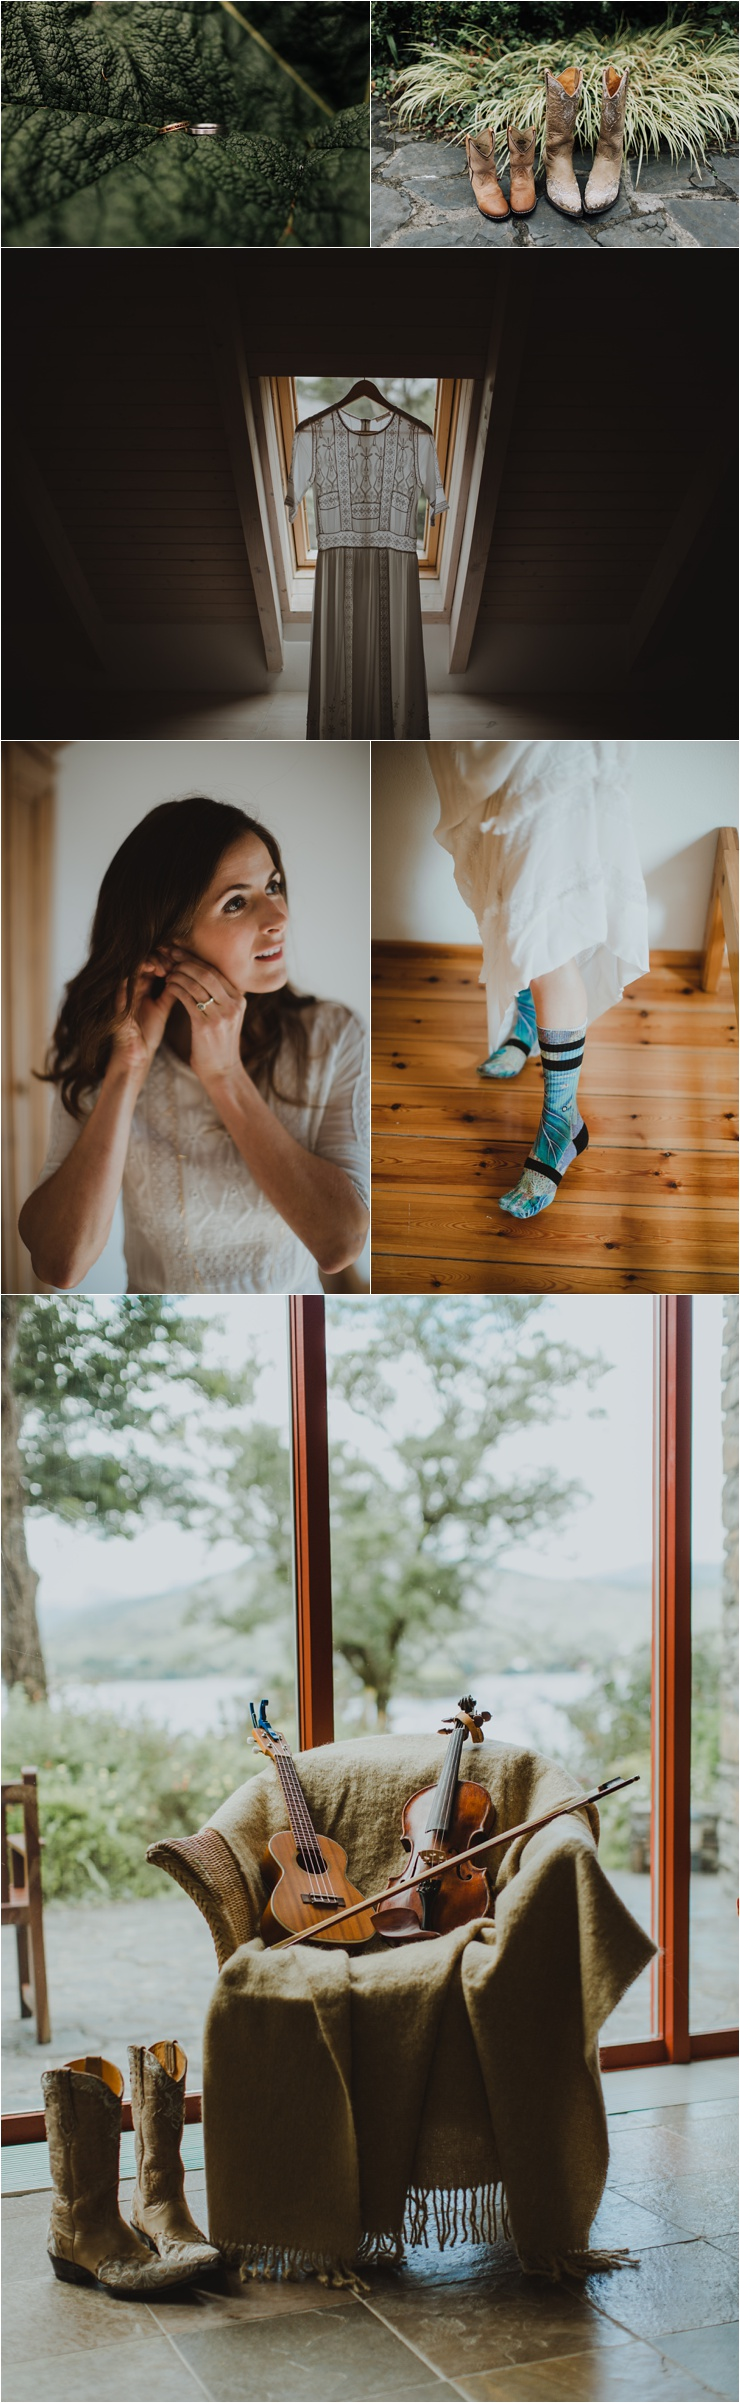 Bridal prep in a private house in Glengarriff in West Cork Ireland by Paula O'Hara Photography